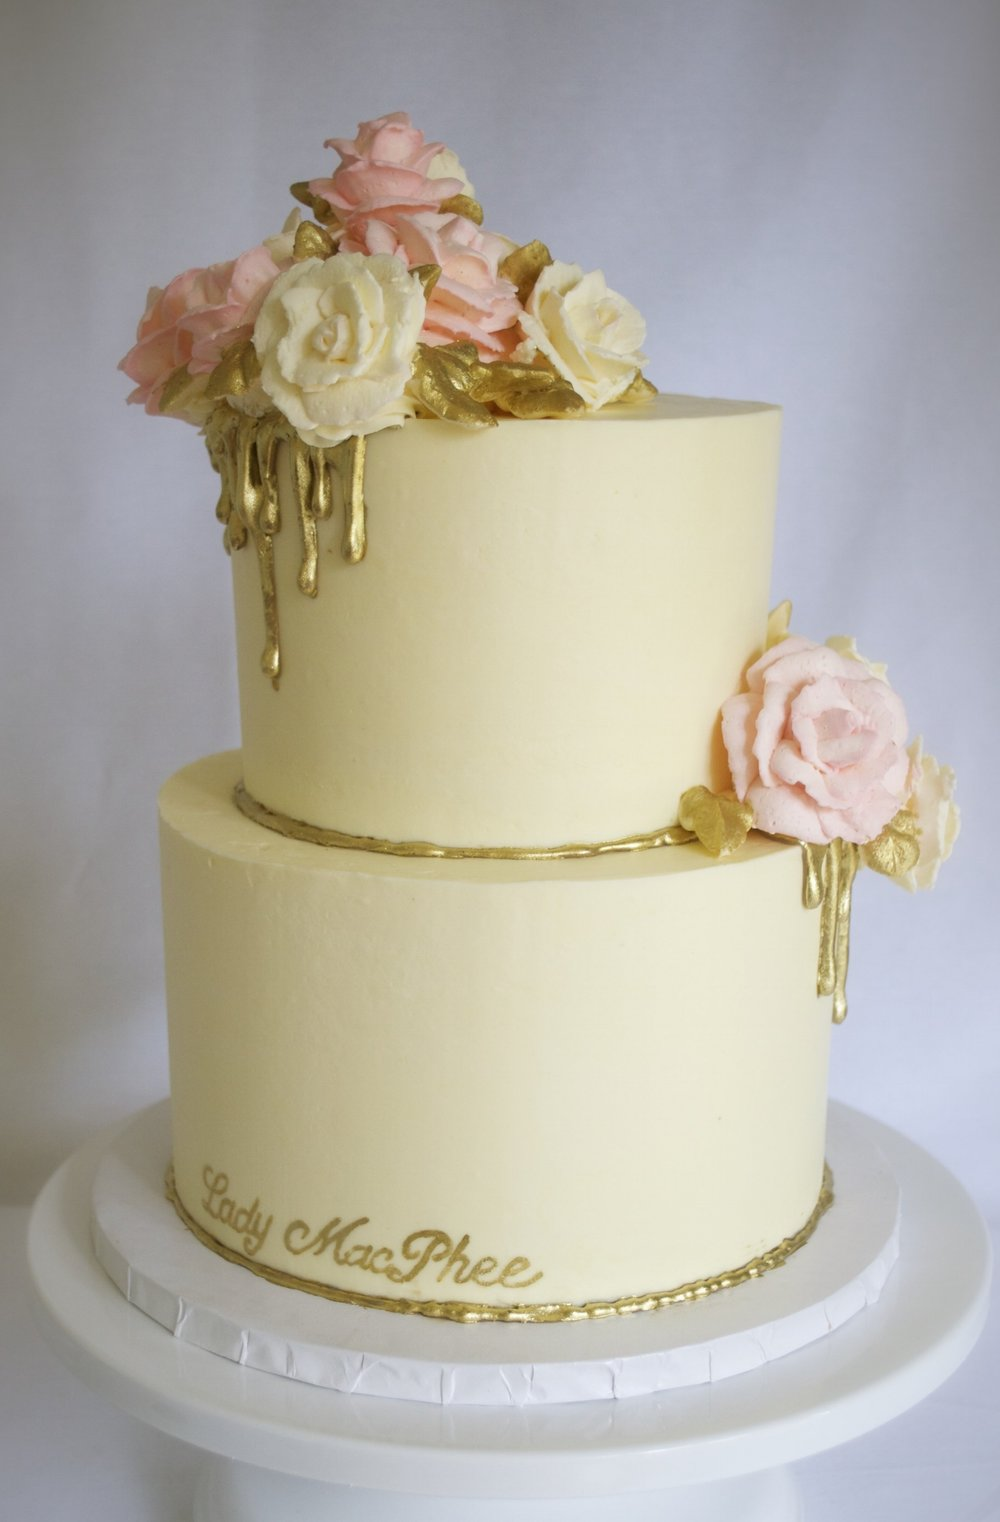 Buttercream roses with gold drip